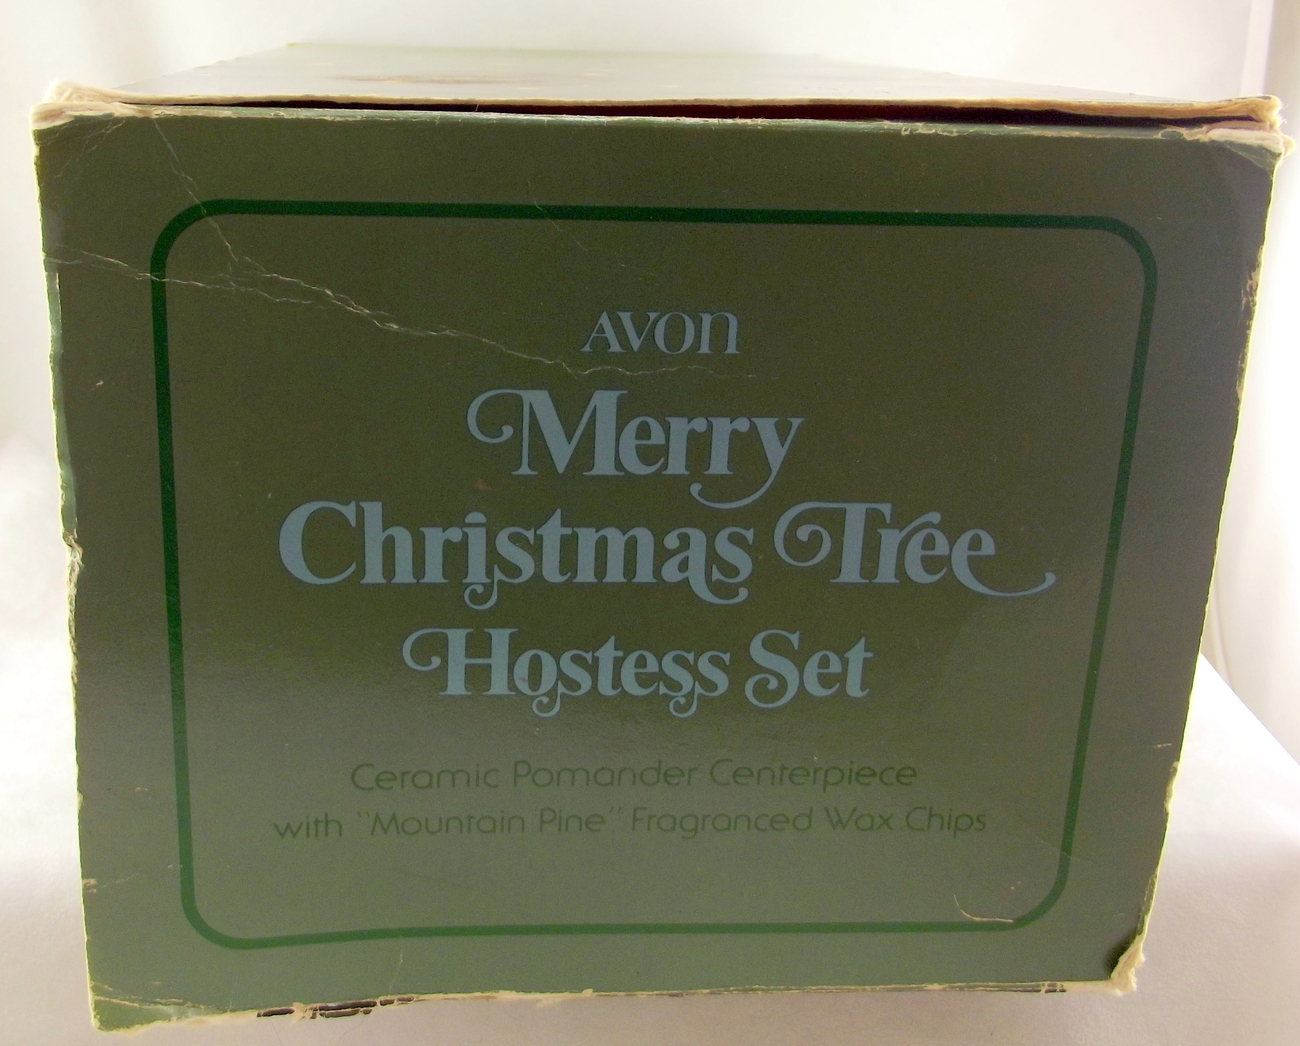 Avon_merry_christmas_tree_hostess_set_5